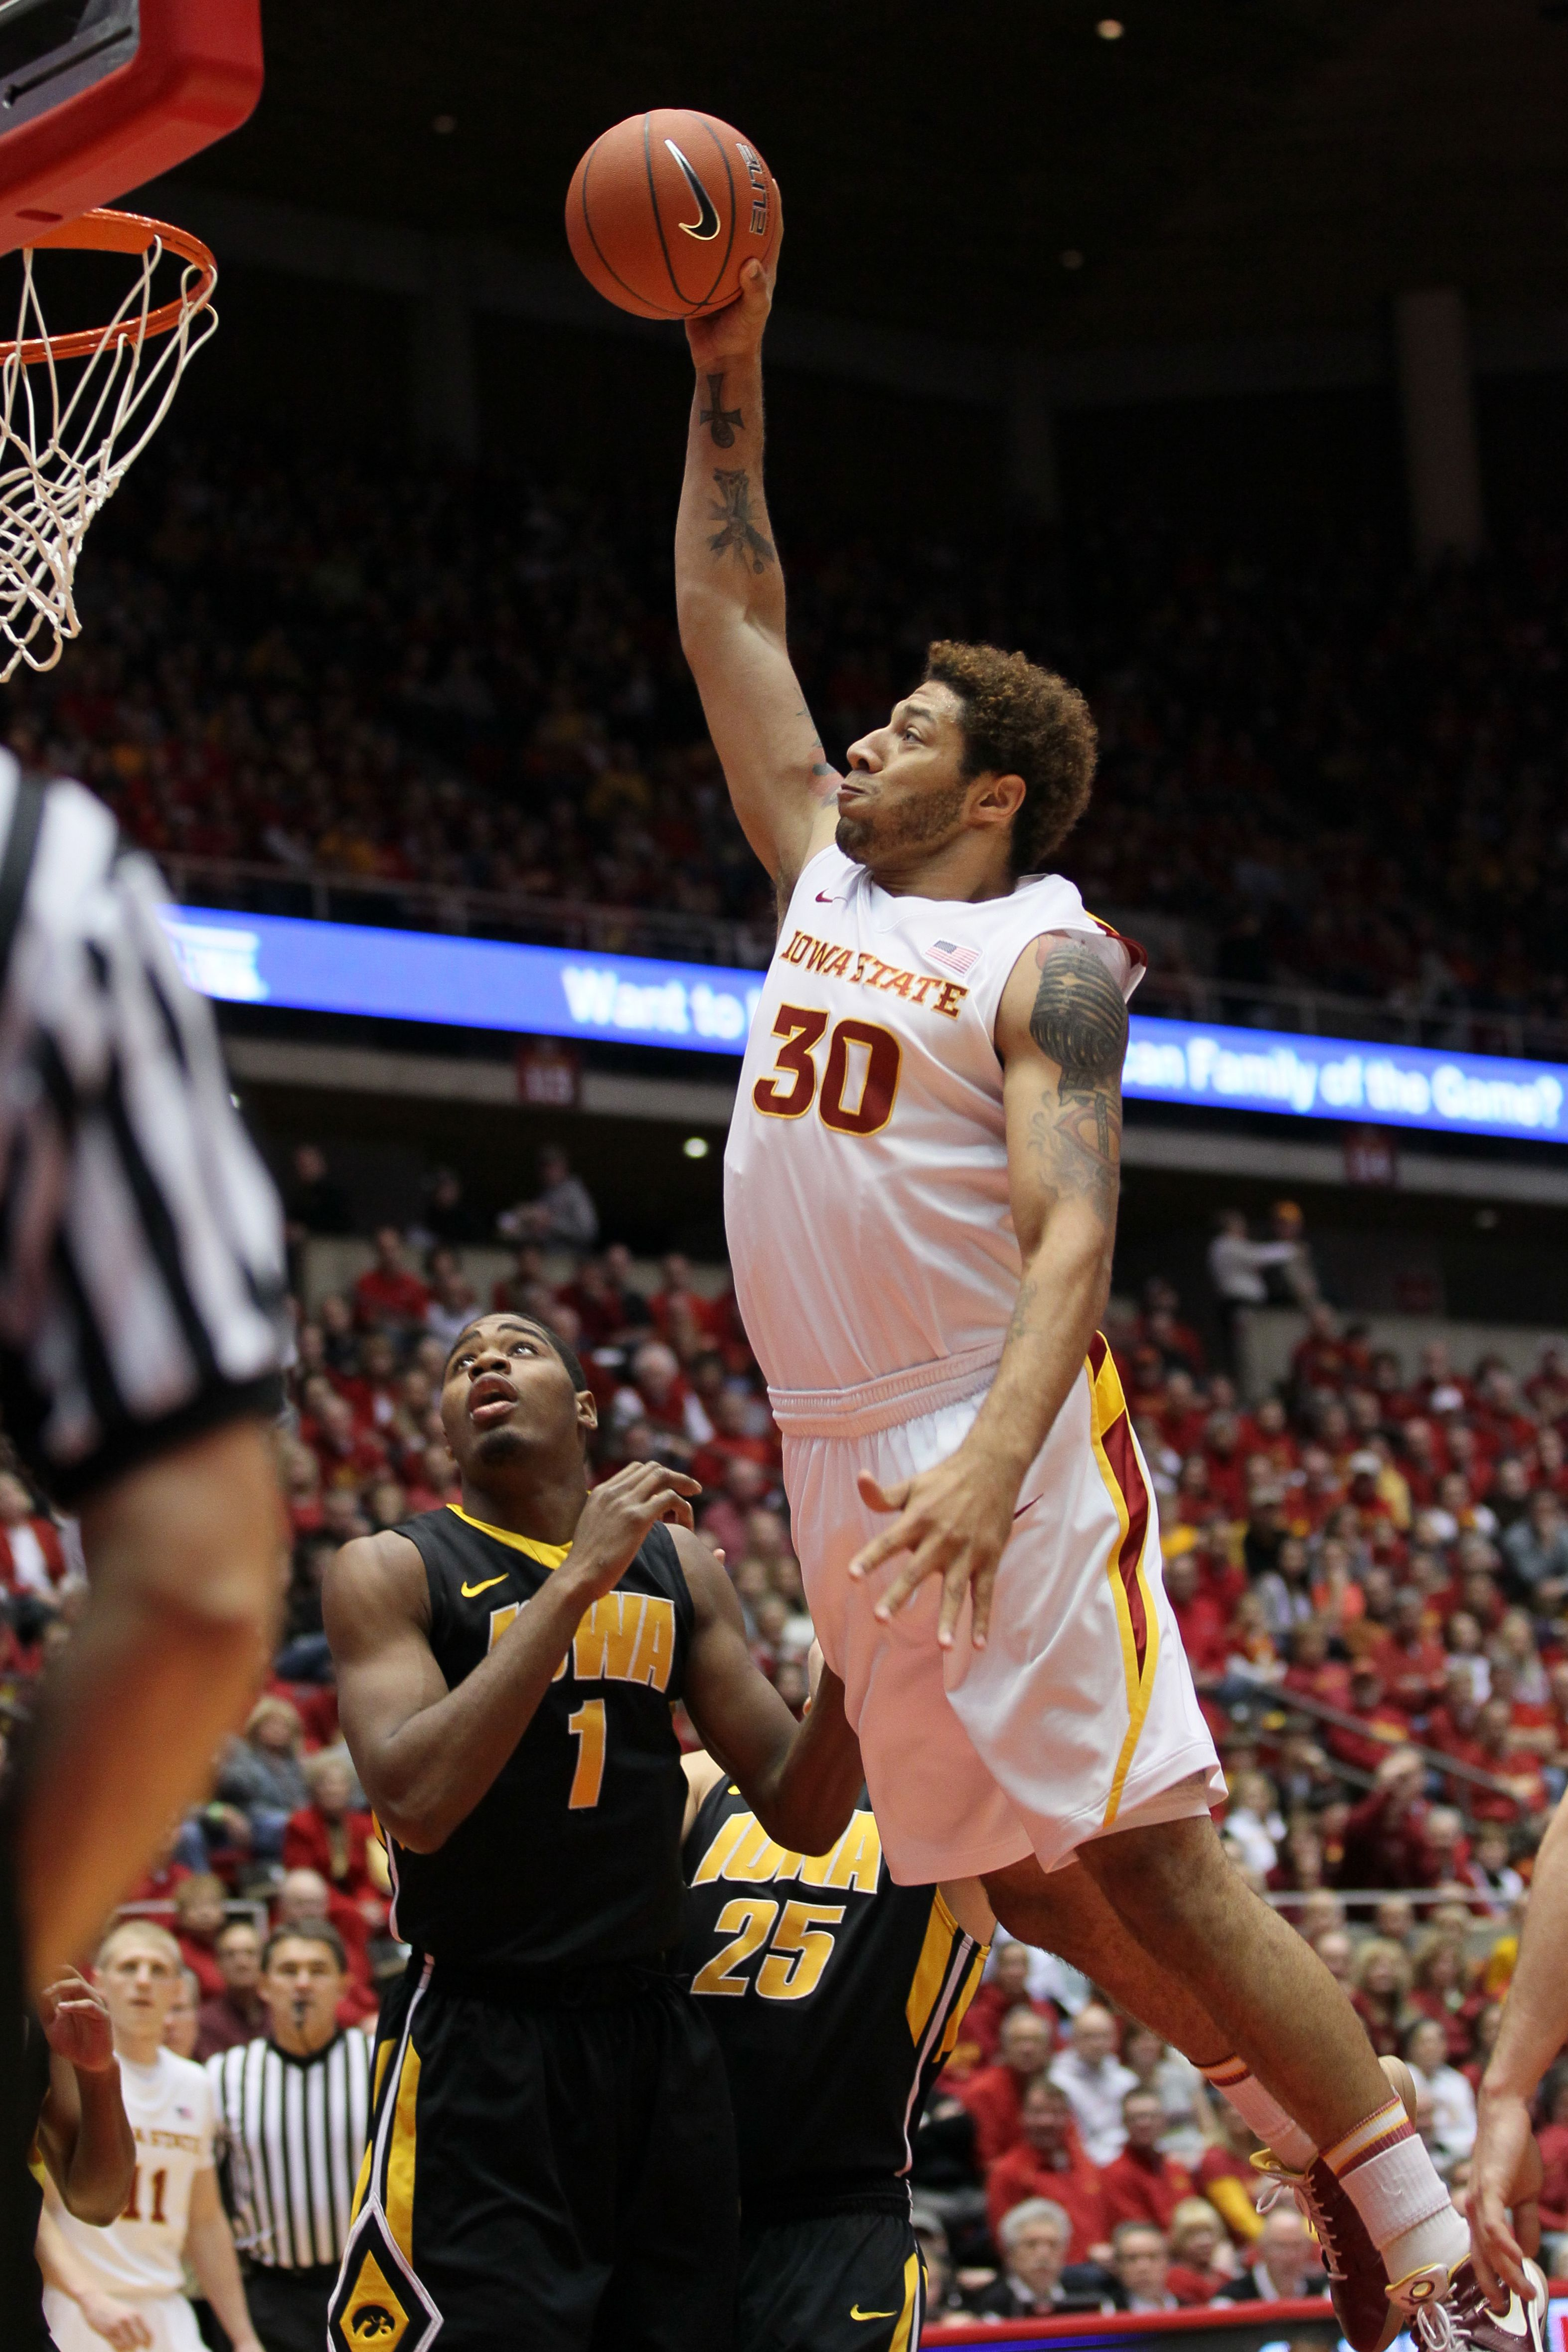 Cyclones are currently tied for third place in the Big 12